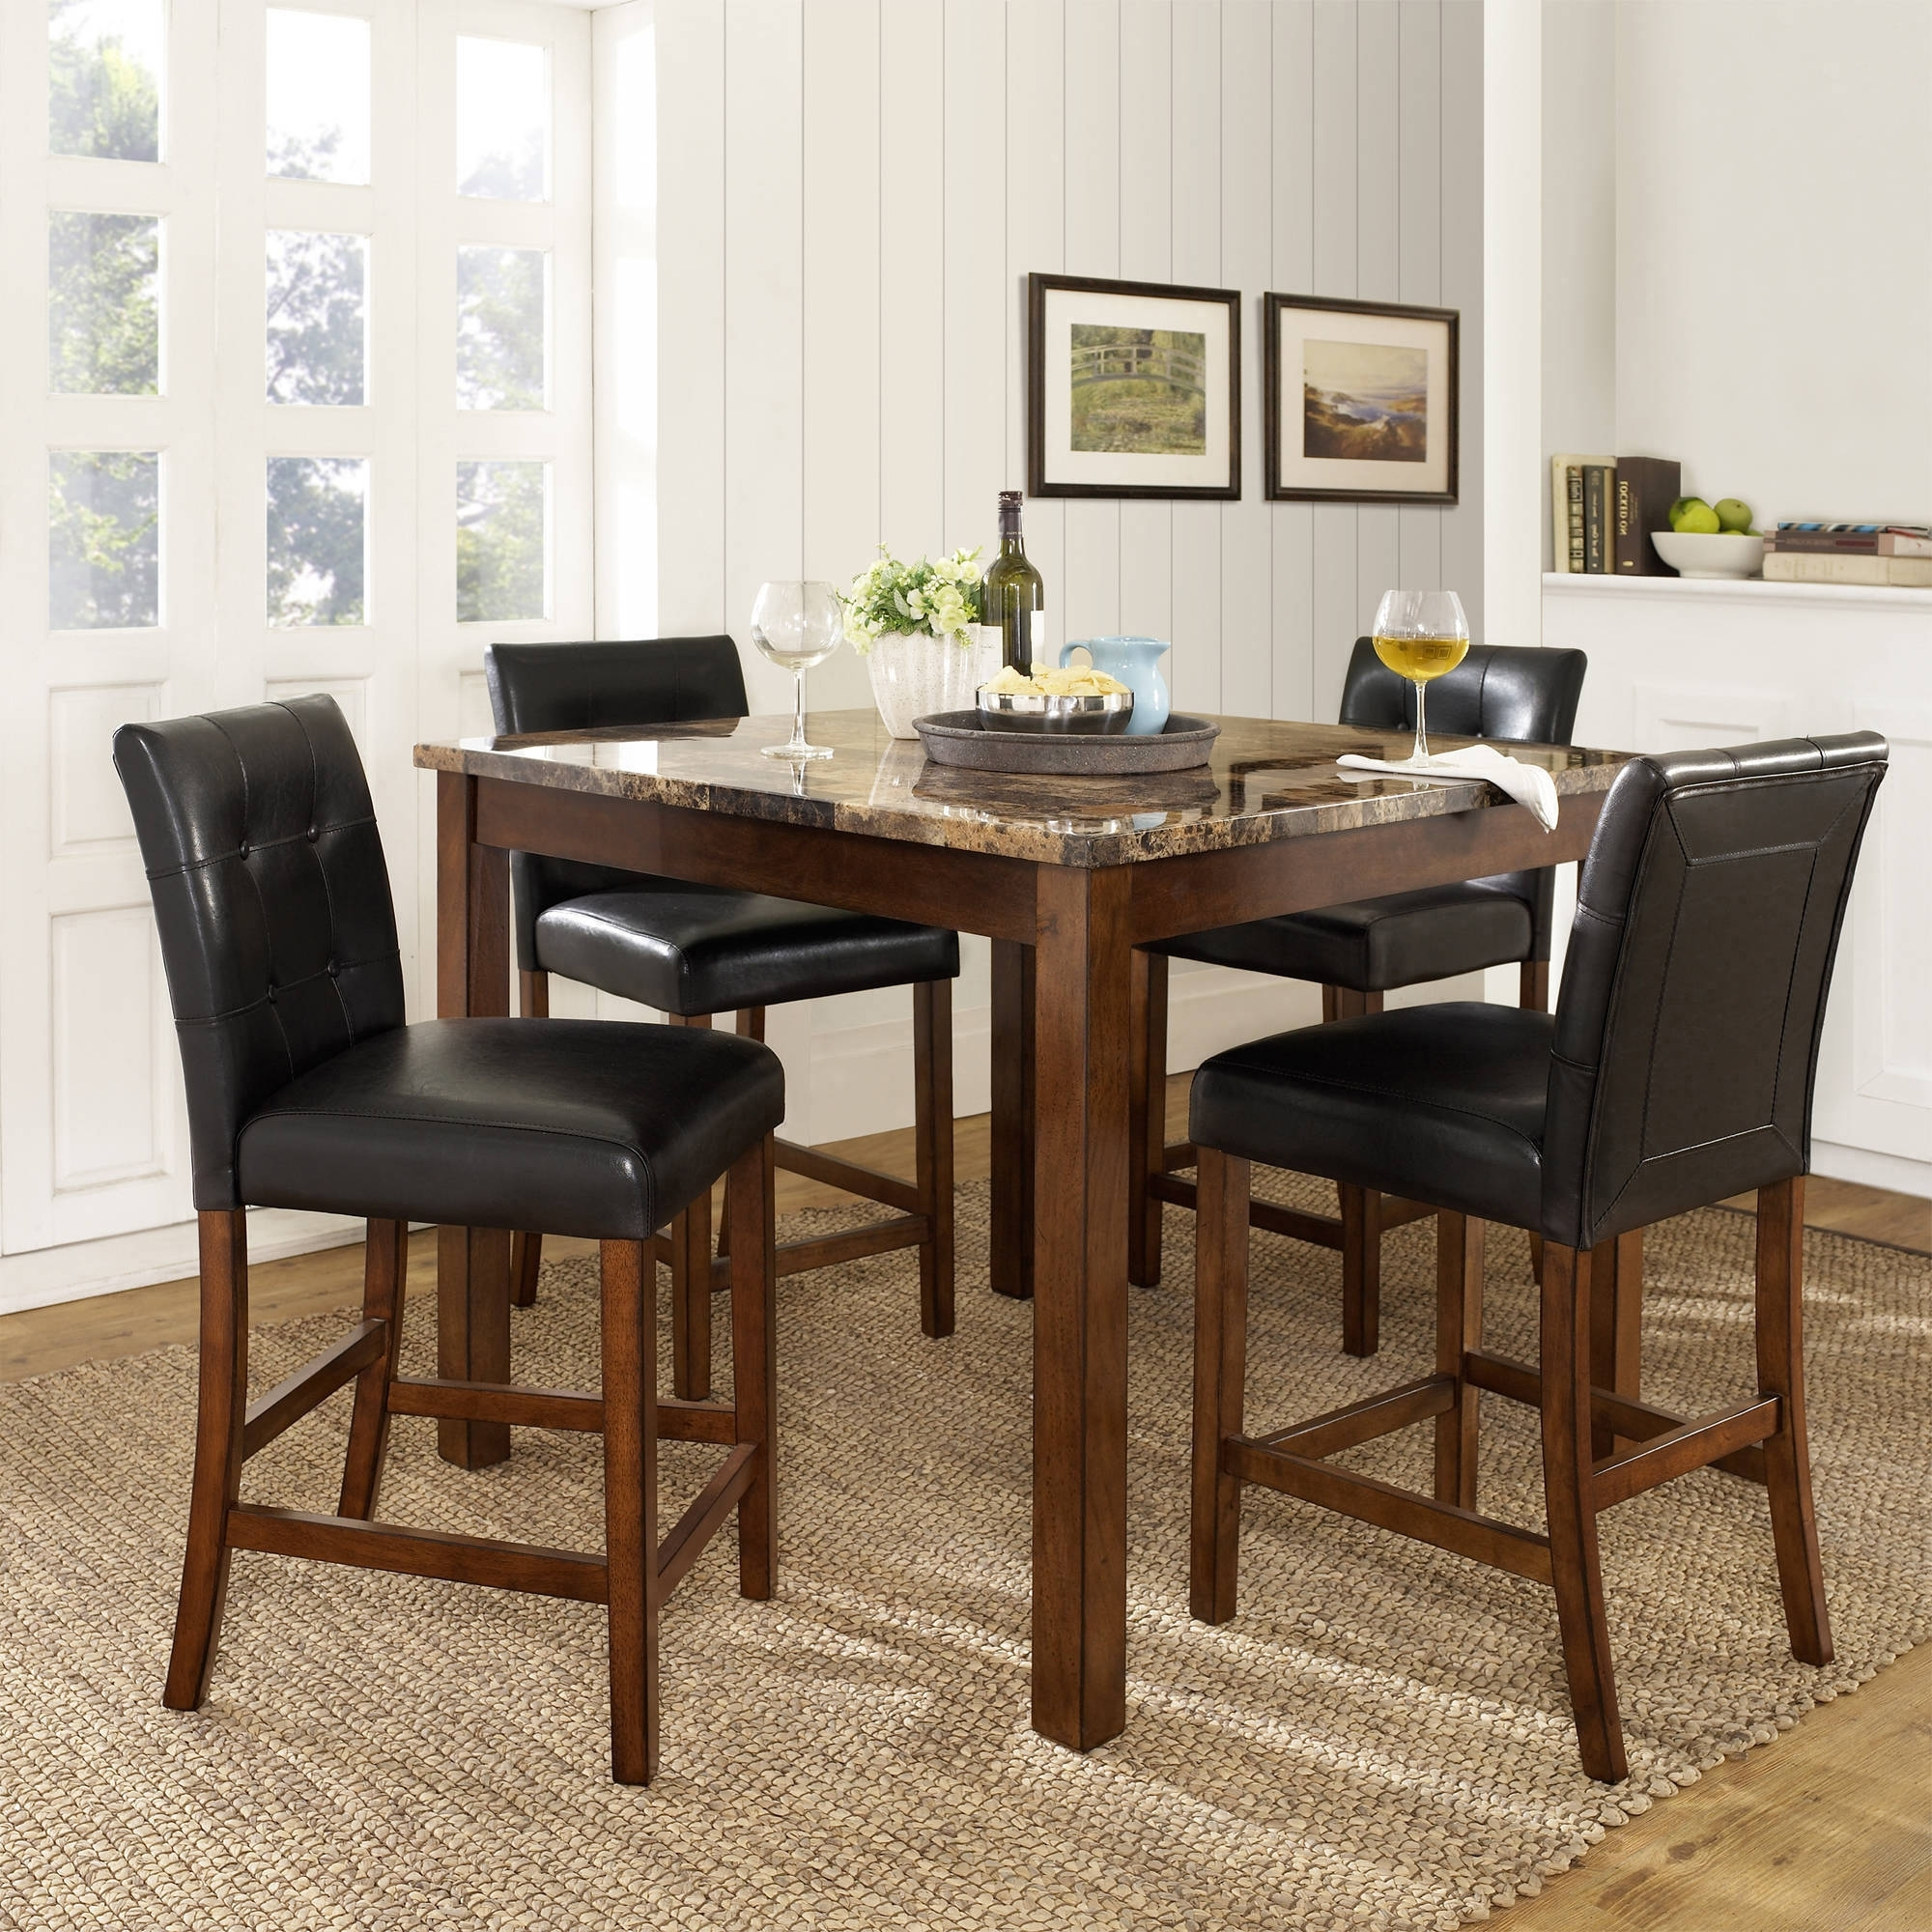 """Famous Mainstays 5 Piece Glass And Metal Dining Set, 42"""" Round Tabletop Inside Cheap Dining Tables Sets (View 14 of 25)"""